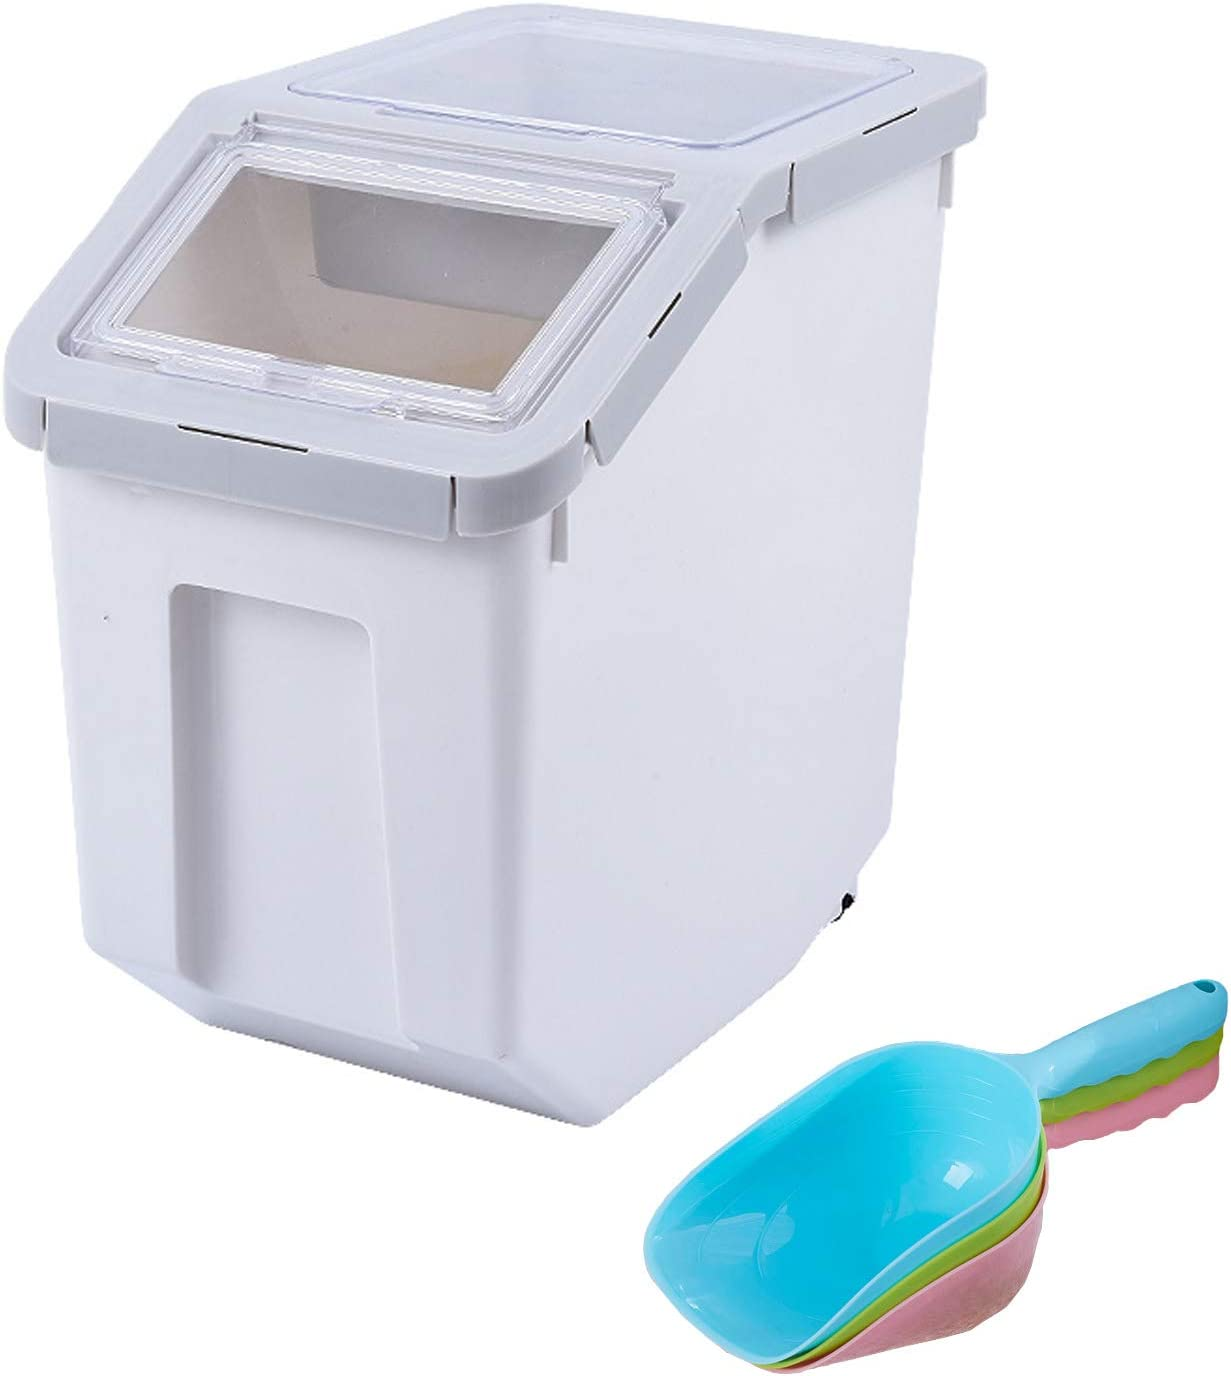 New York Mall PENCKRice Container Storage Pet Dog Plast Airtight Food Fixed price for sale Cat Bin